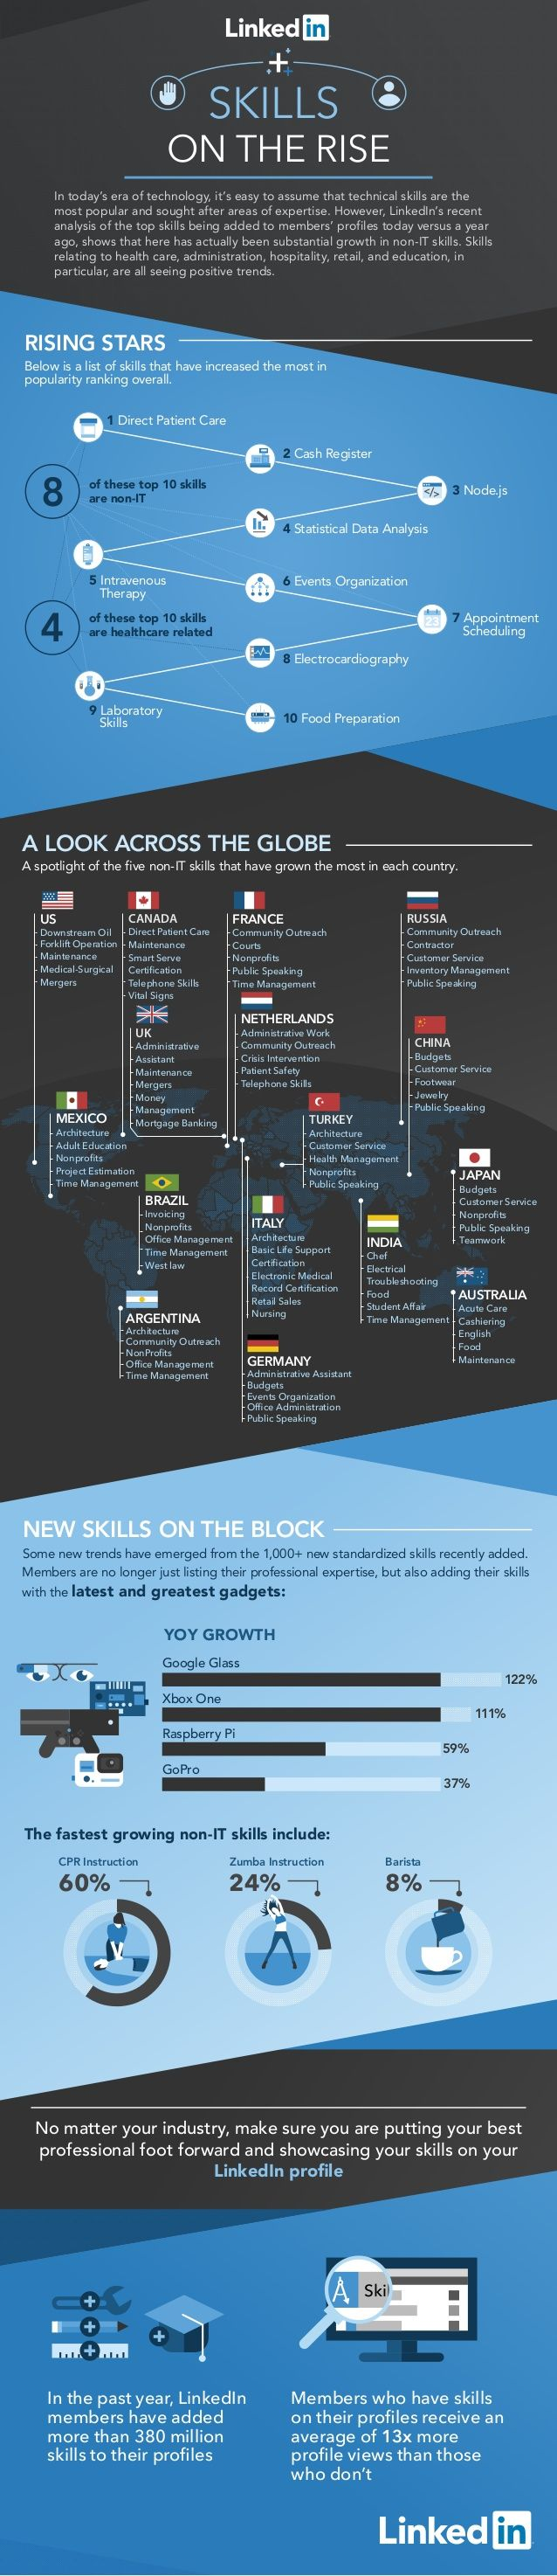 Your Skills Are Your Competitive Edge on LinkedIn [INFOGRAPHIC]